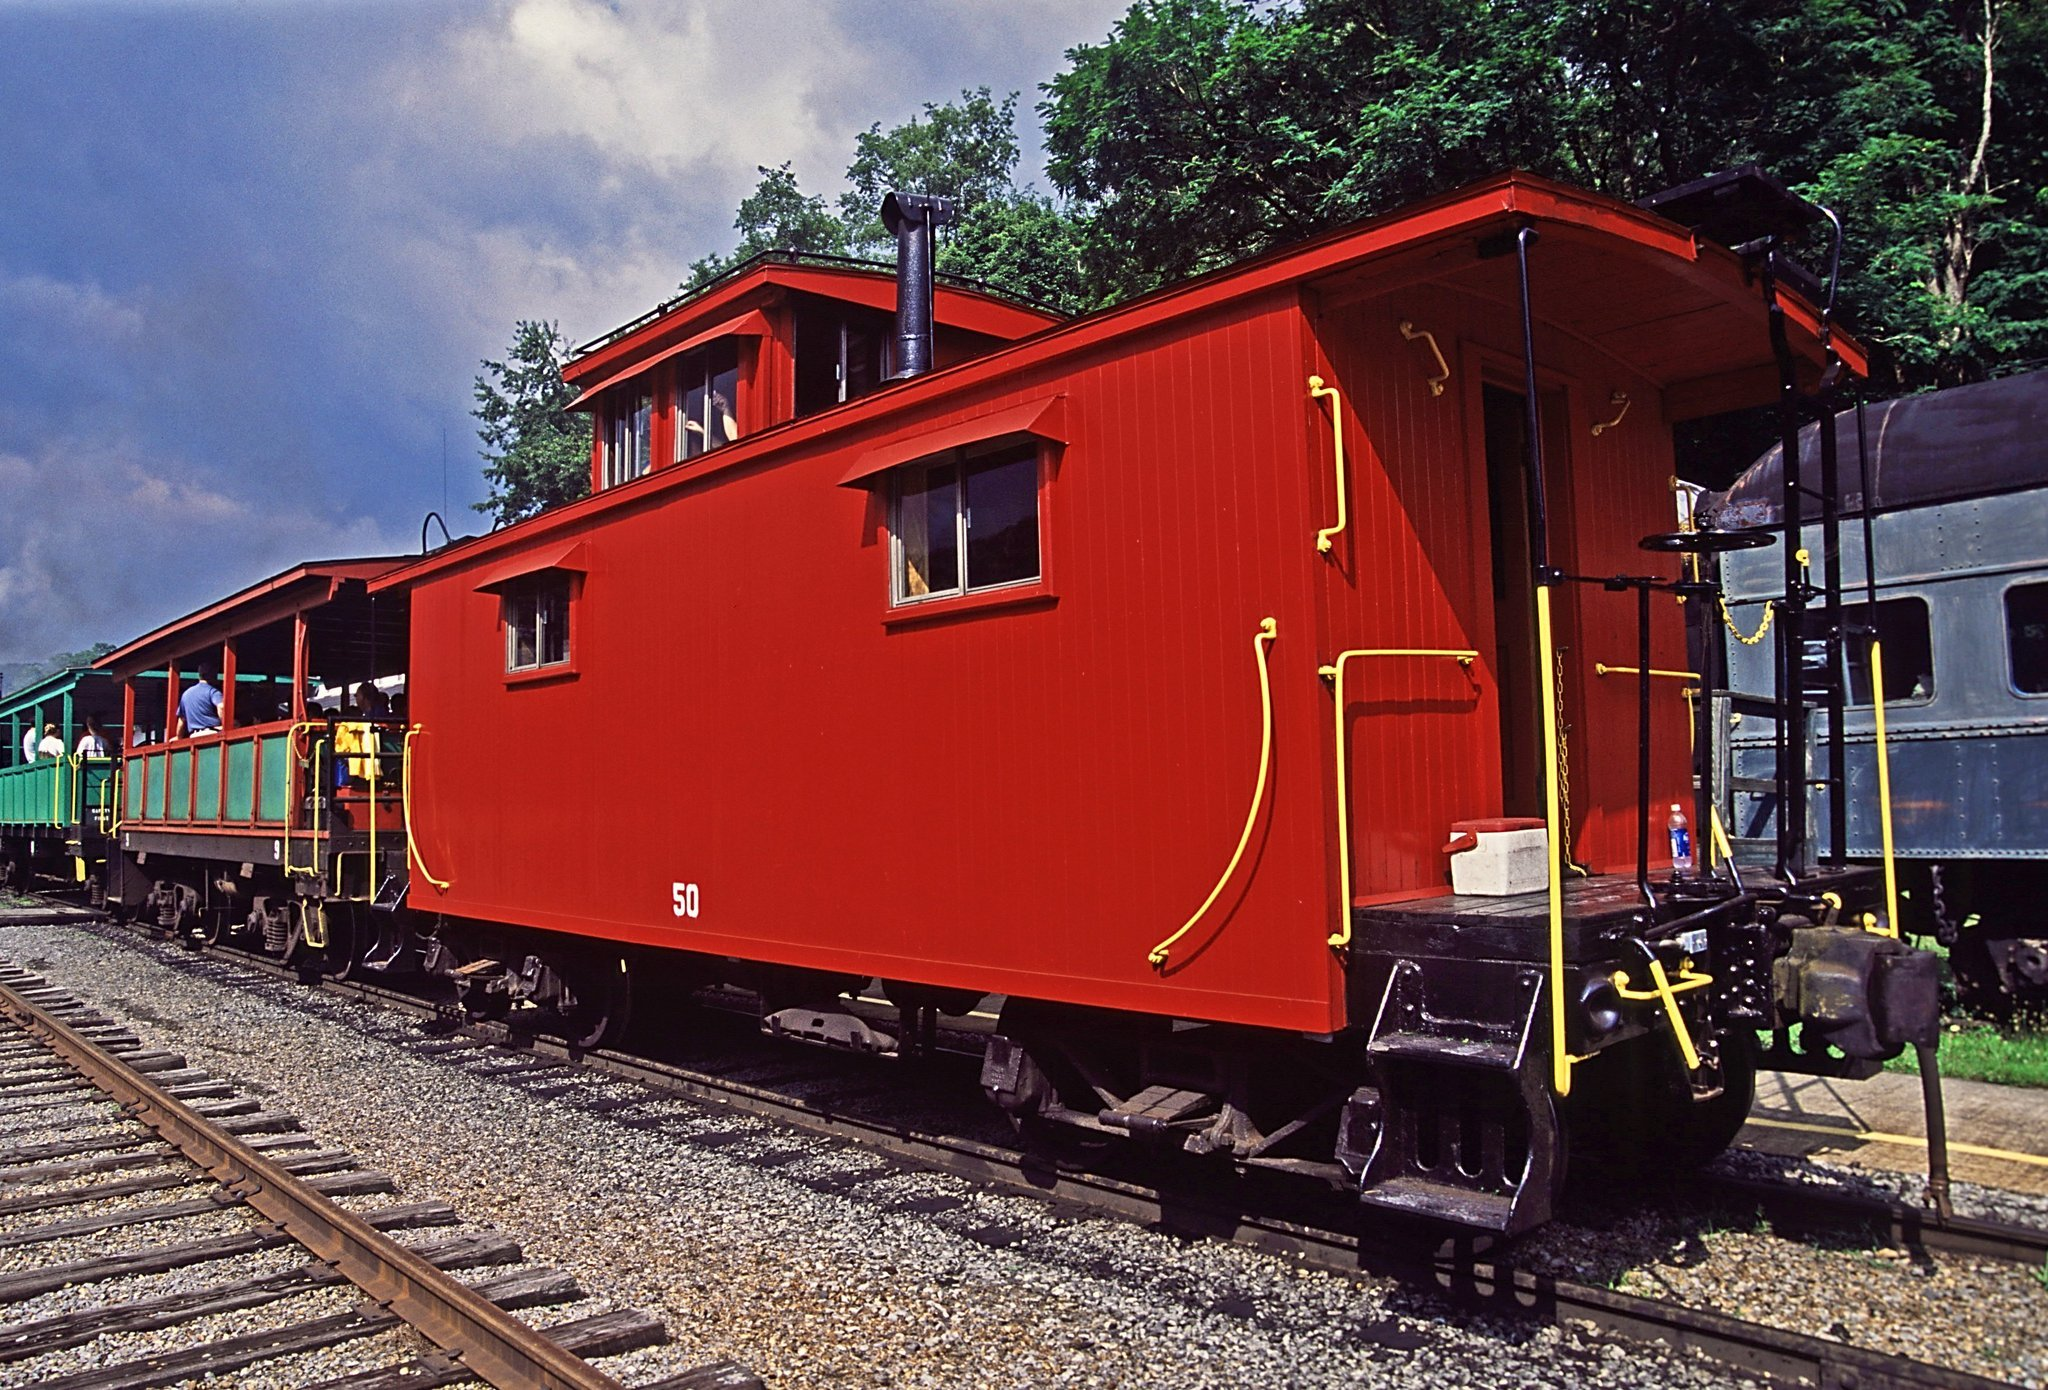 Unusual hotels near Baltimore [Pictures] - Cass Scenic Railroad State Park